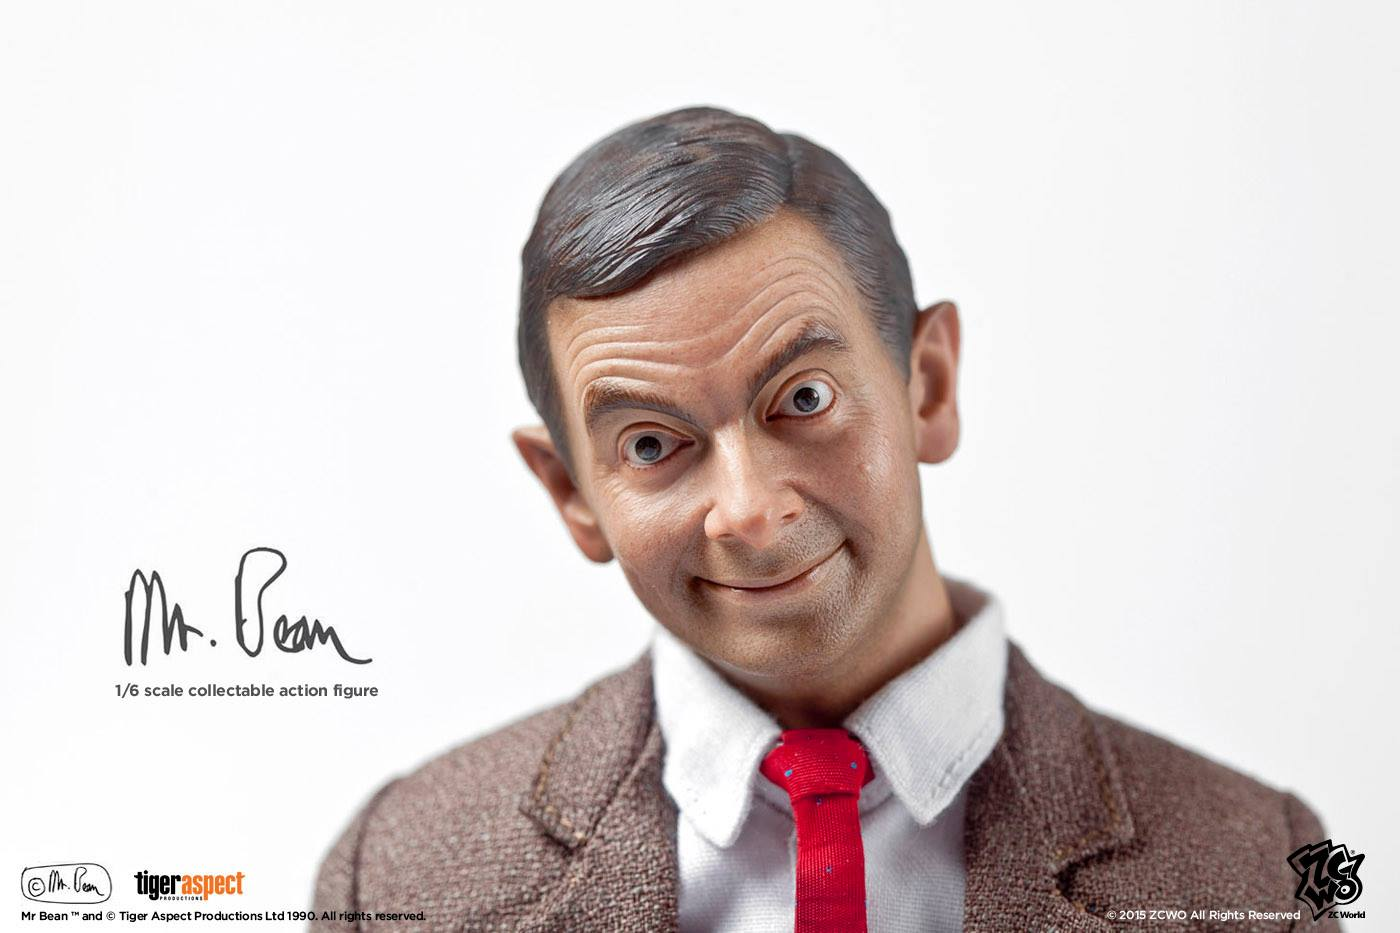 [ZCWO] Mr. Bean - 1/6 scale 150247na4xsrth4aaftts1